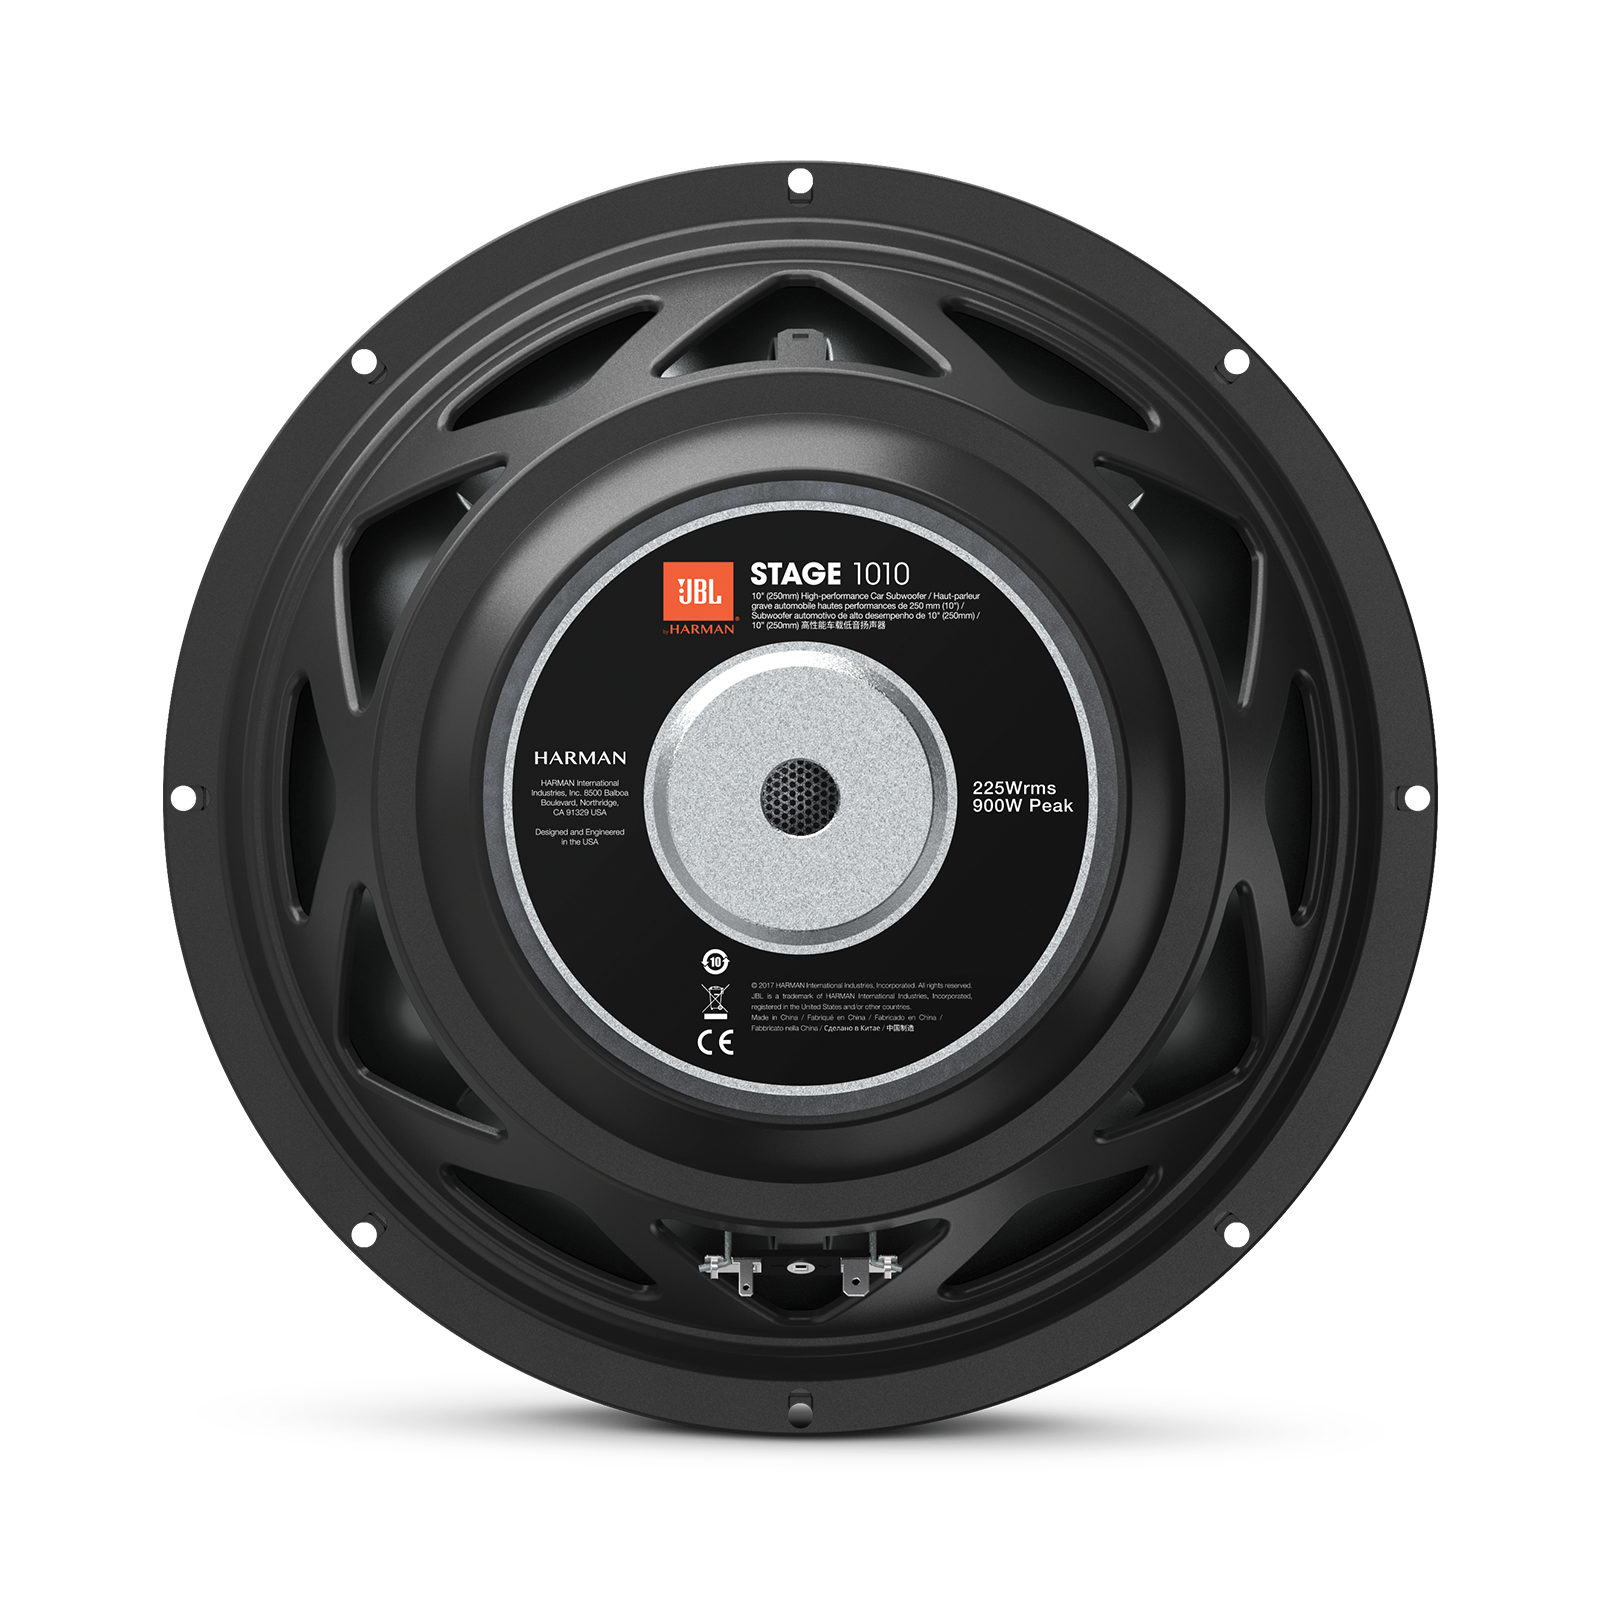 """JBL Stage 1010 Subwoofer - Black - 10"""" (250mm) woofer with 225 RMS and 900W peak power handling. - Back"""